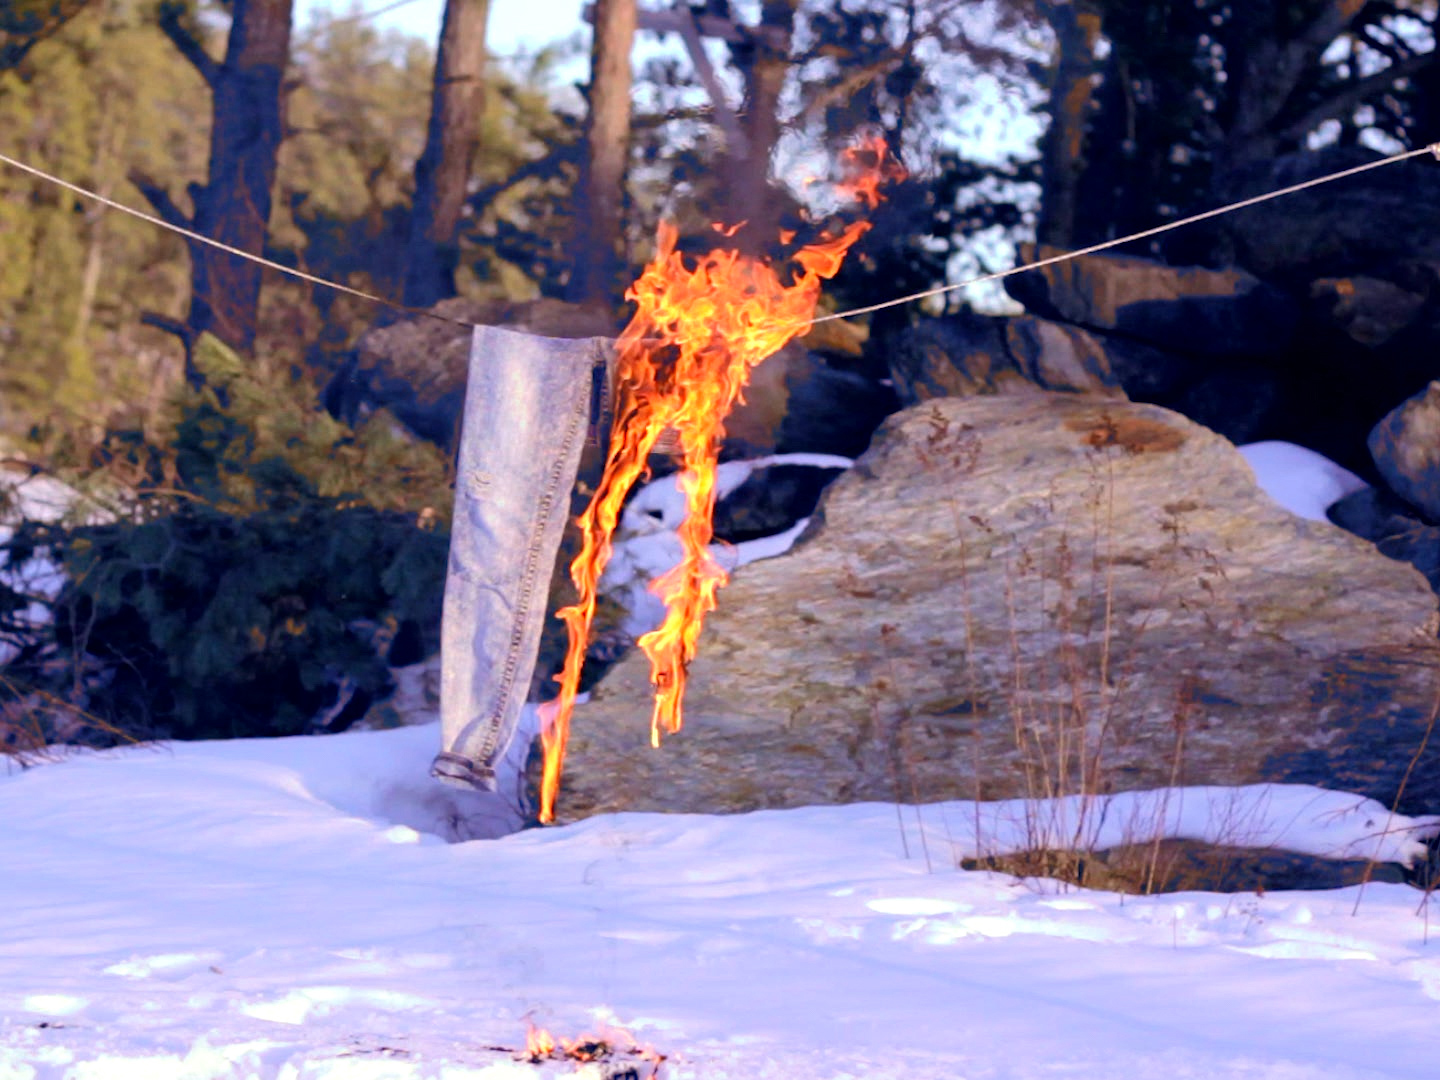 A Study In Blue Jeans - This piece involves a pair of jeans burning on a clothesline. The transformation of pants due to the fire, and transformation of fire as it destroys the pants, shows the ephemeral nature of things; no pair of pants will ever burn the same way.Múm song 'Scratched Bicycle/Smell Memory' from album 'The Peel Session' was reversed to accompany this non-looping version.